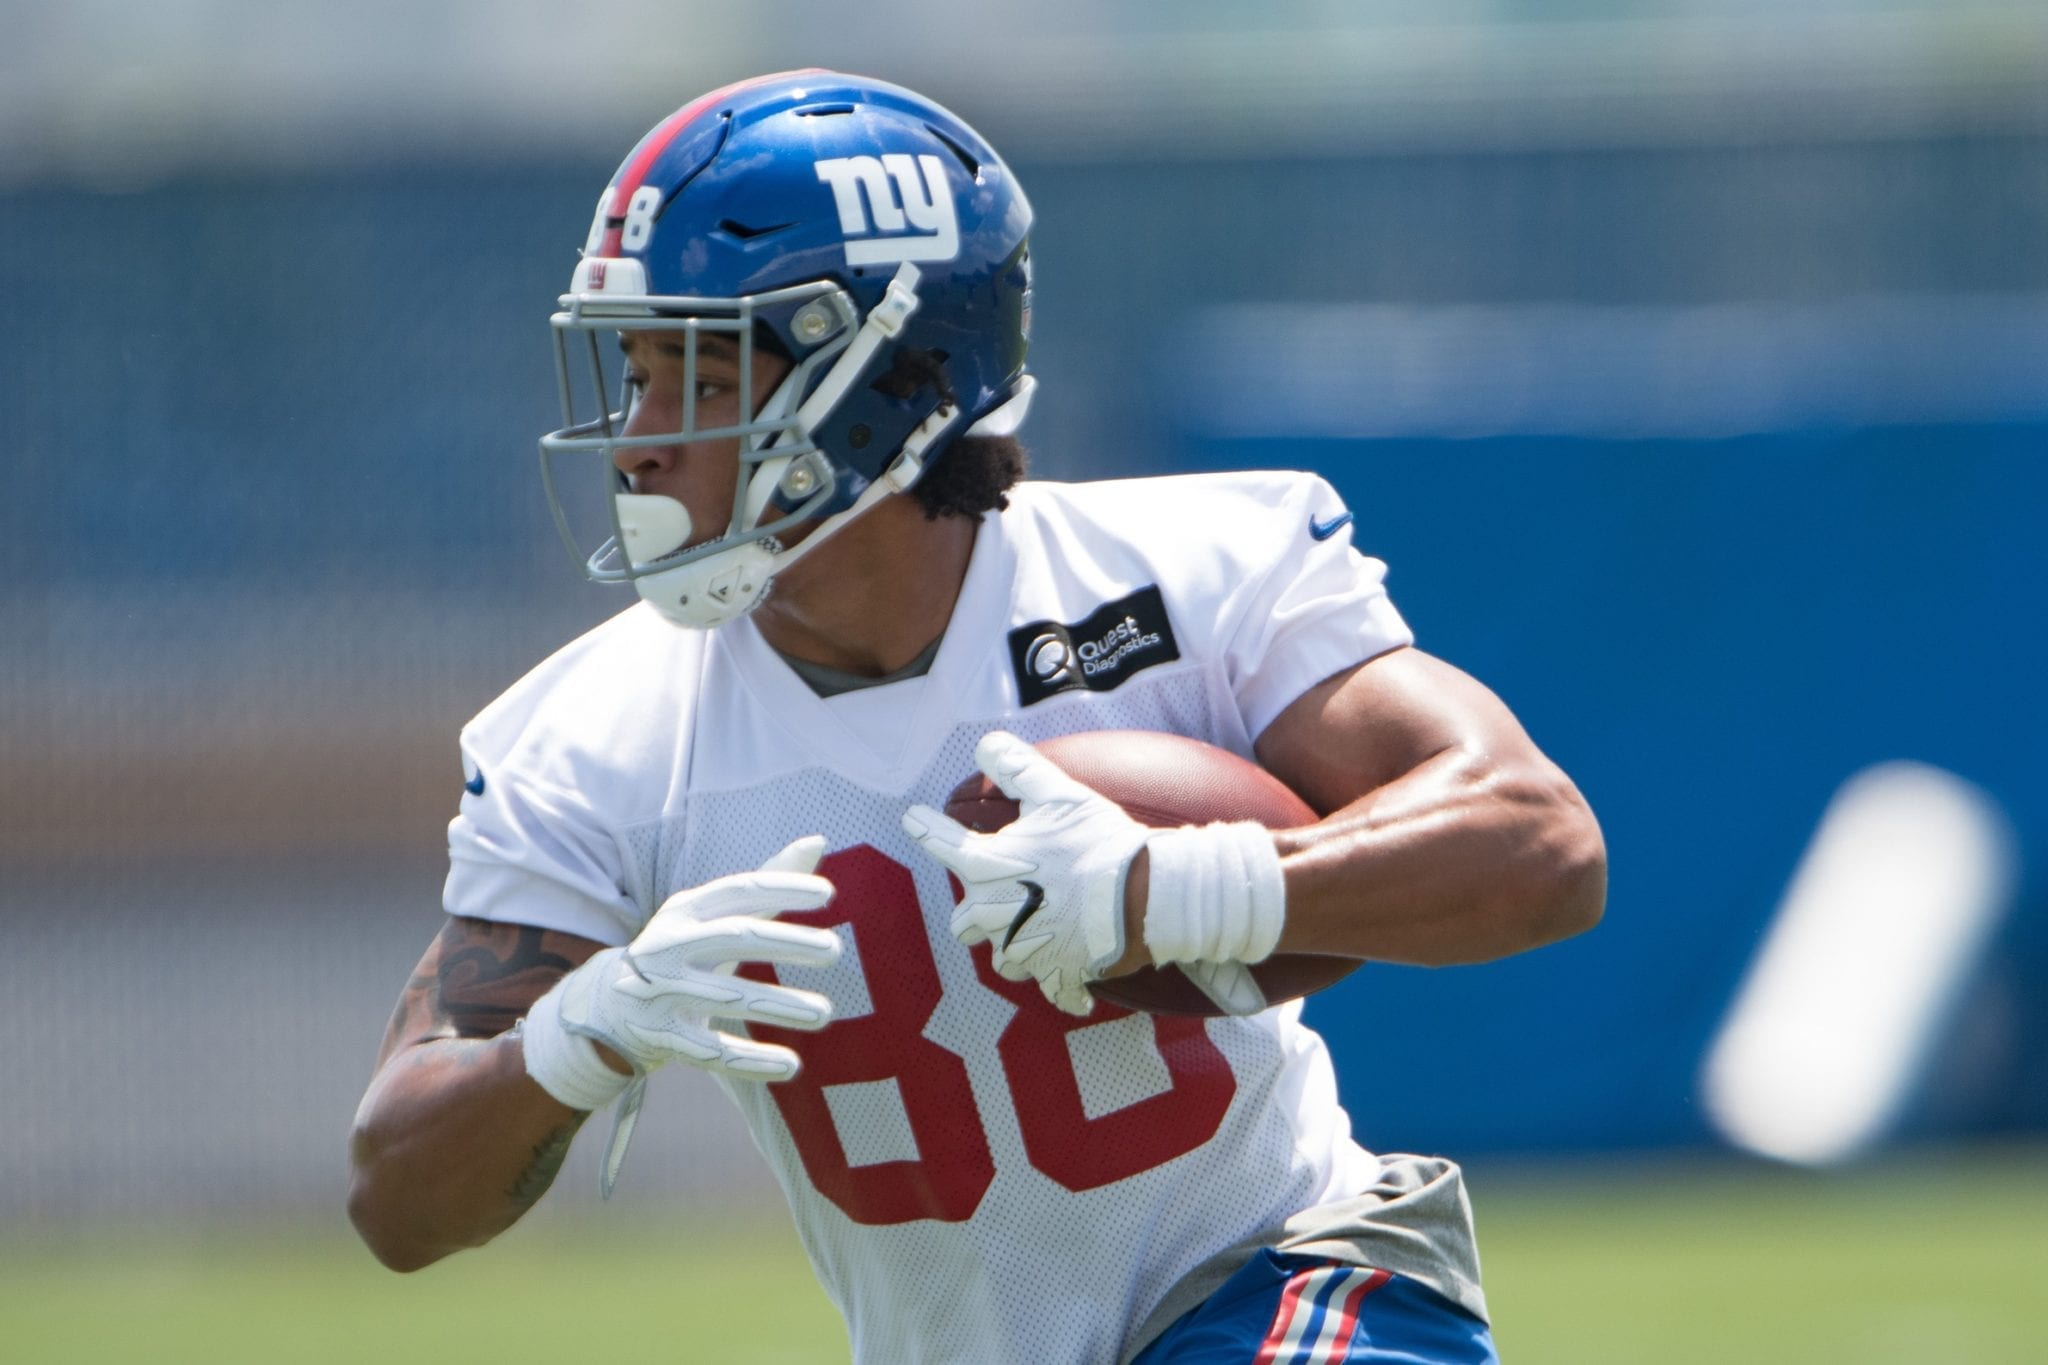 Nf Nfl Free Agents 2016 Rankings - 2 weeks ago giants nfl transactions 0 comments